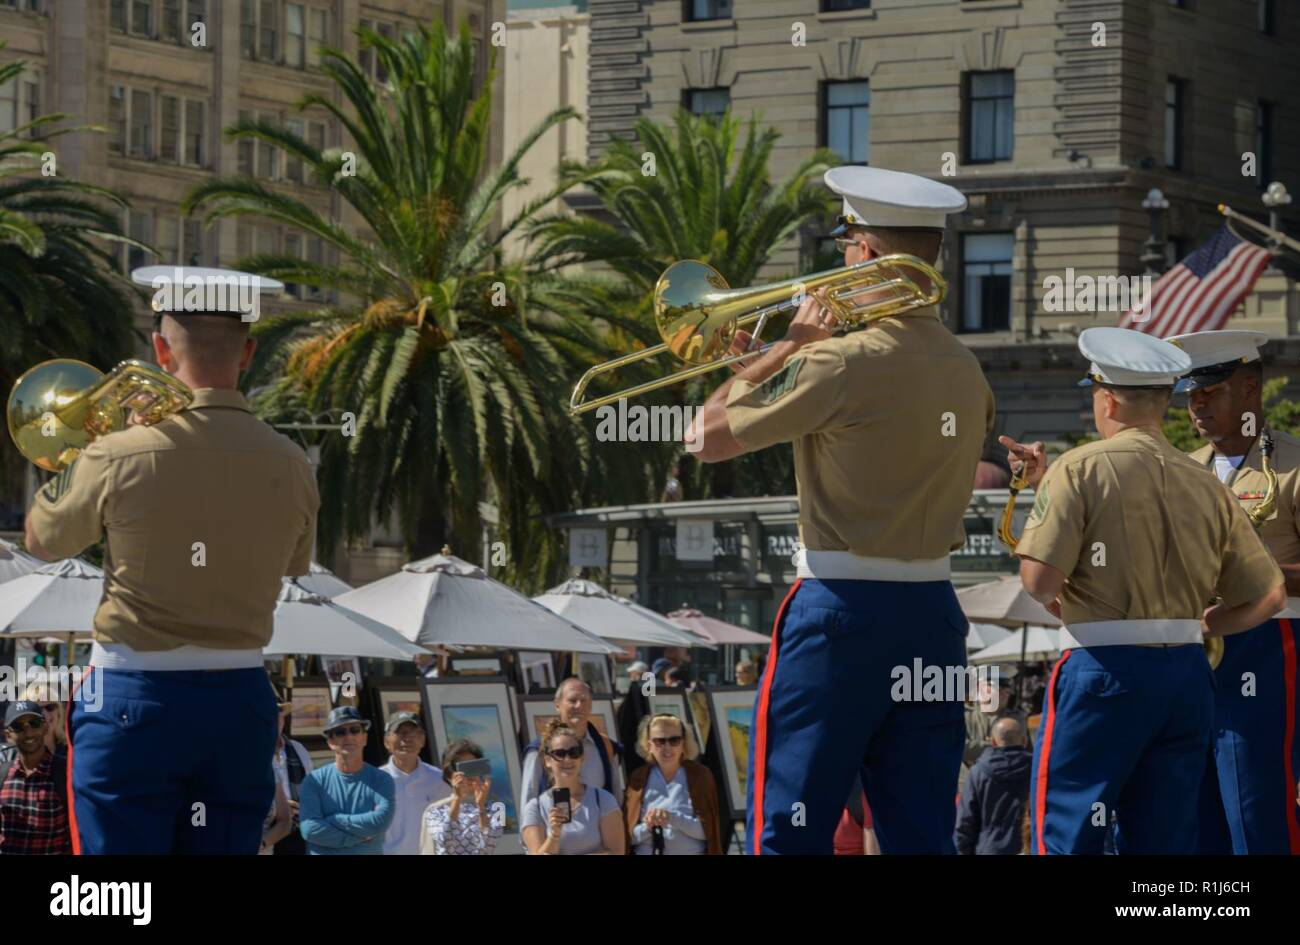 Members of the 1st Marine Division Band's party band